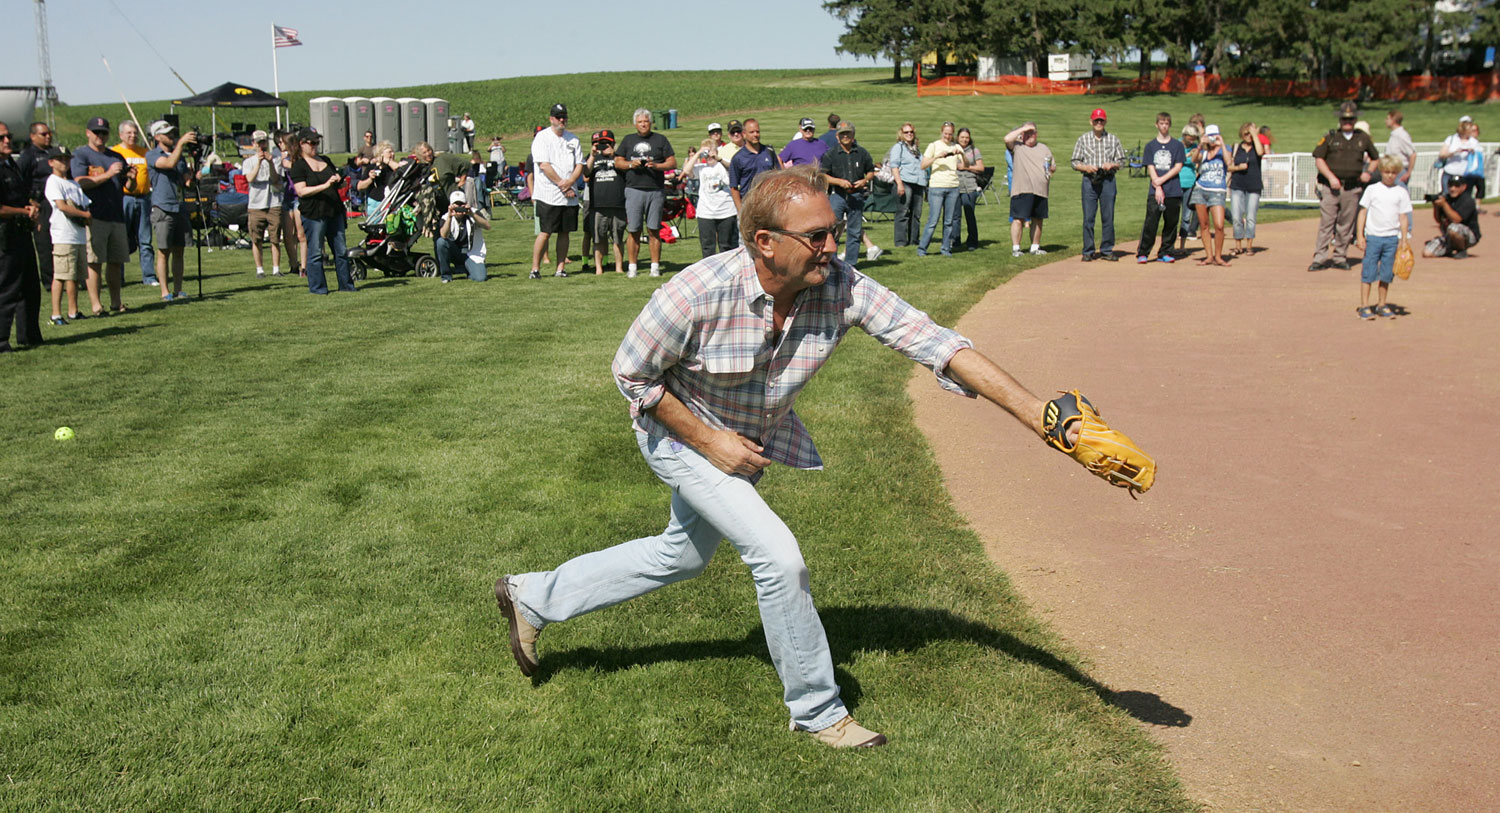 Actor Kevin Costner plays catch with his sons during a party celebrating the 25th anniversary of the  Field of Dreams  movie Friday, June 13, 2014, near Dyersville, Iowa.